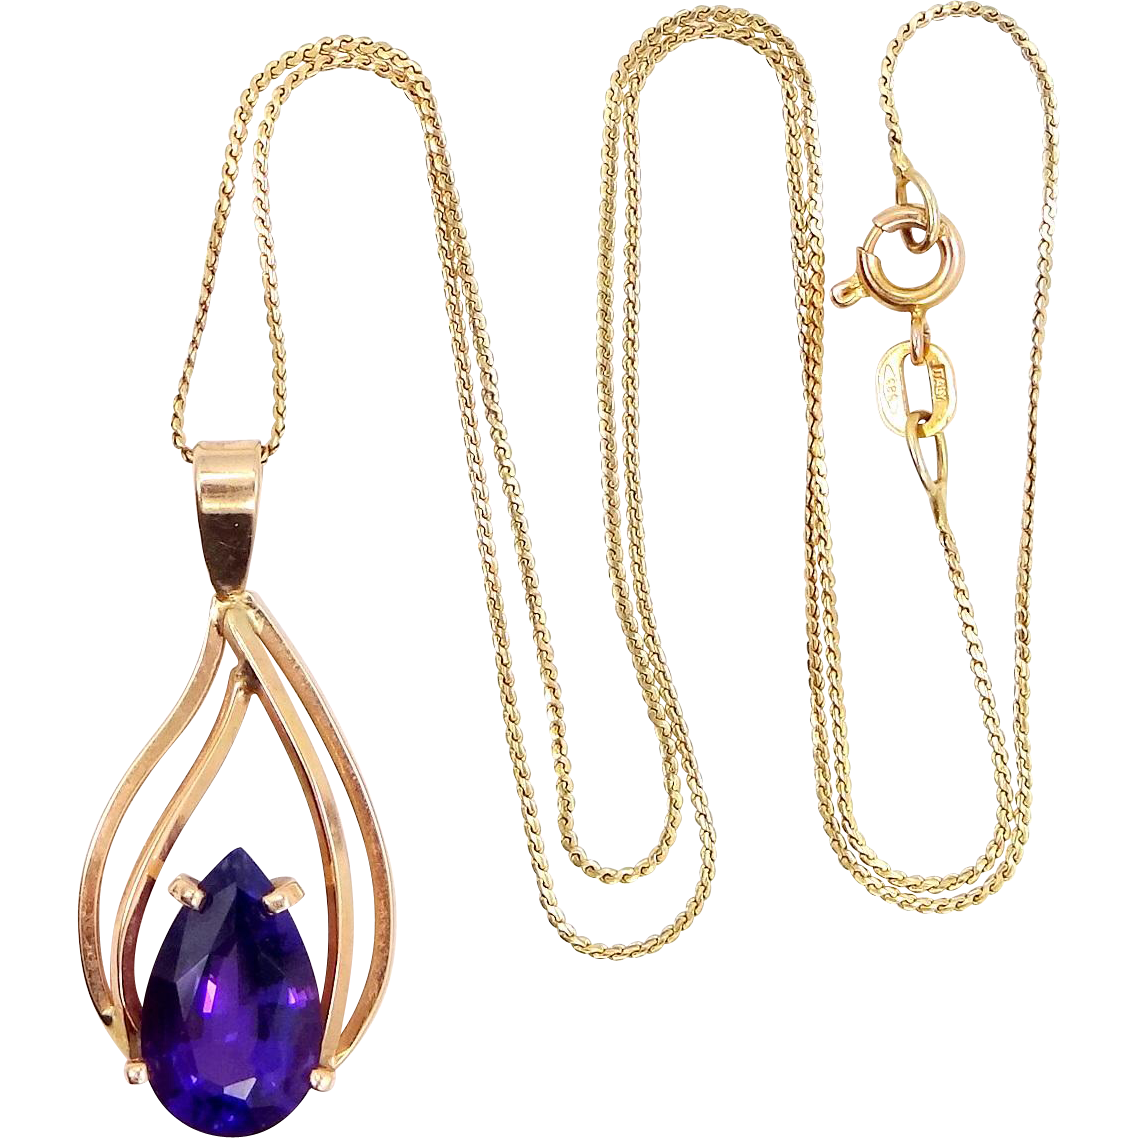 14k Gold 3 Carat Amethyst Solitaire Necklace